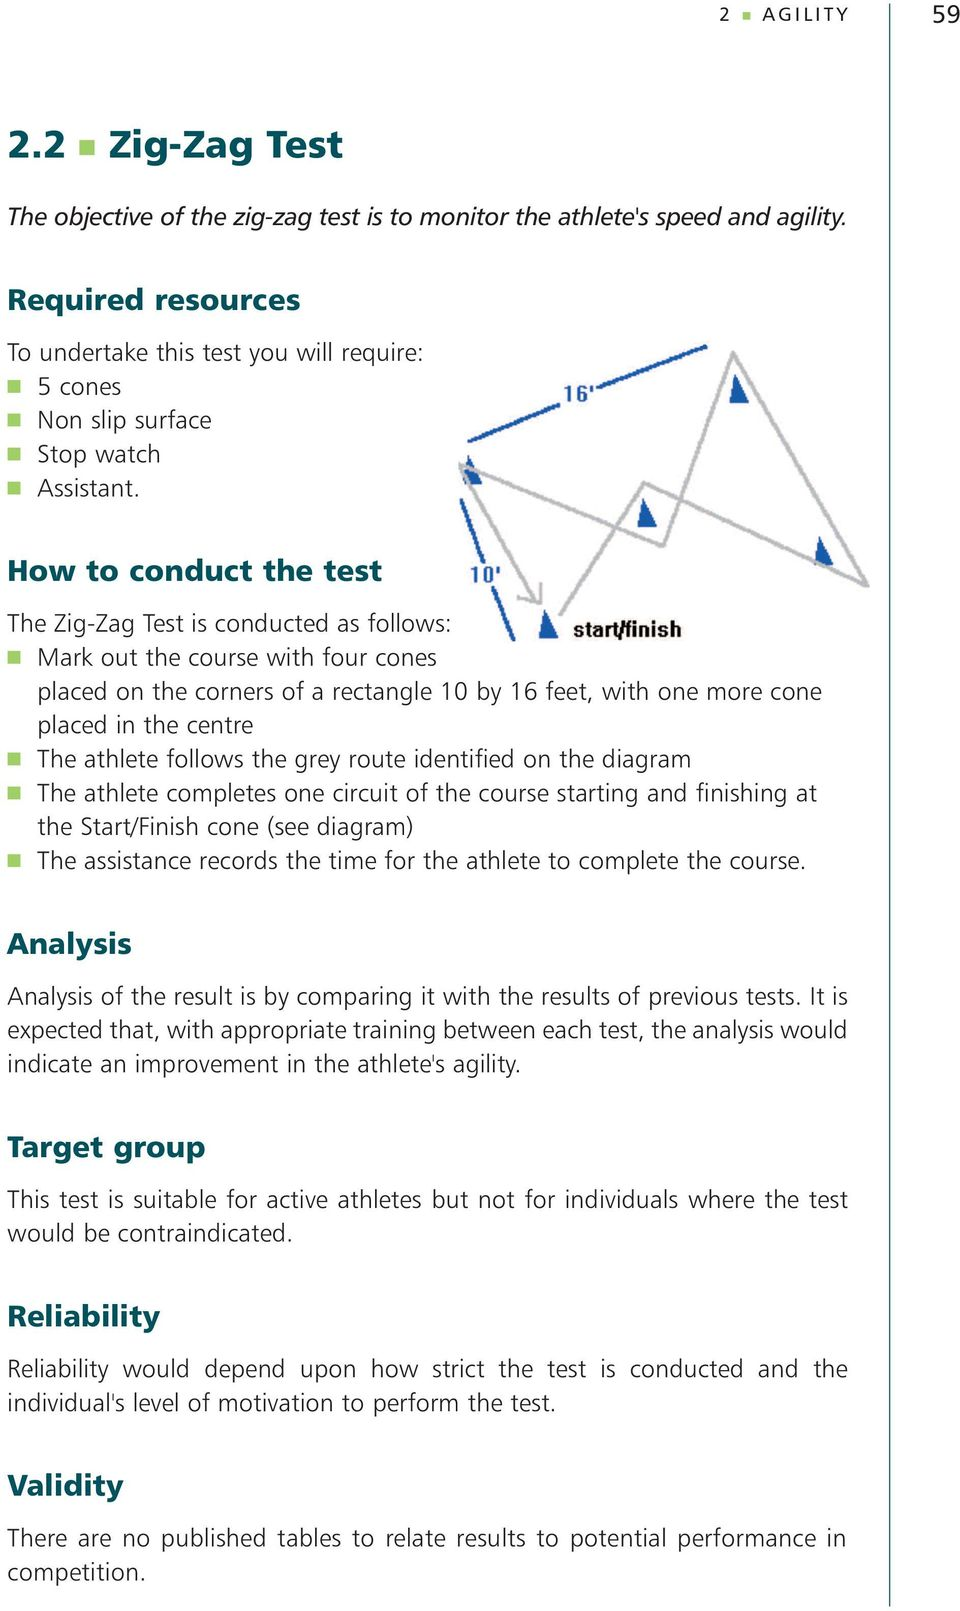 How to conduct the test The Zig-Zag Test is conducted as follows: Mark out the course with four cones placed on the corners of a rectangle 10 by 16 feet, with one more cone placed in the centre The